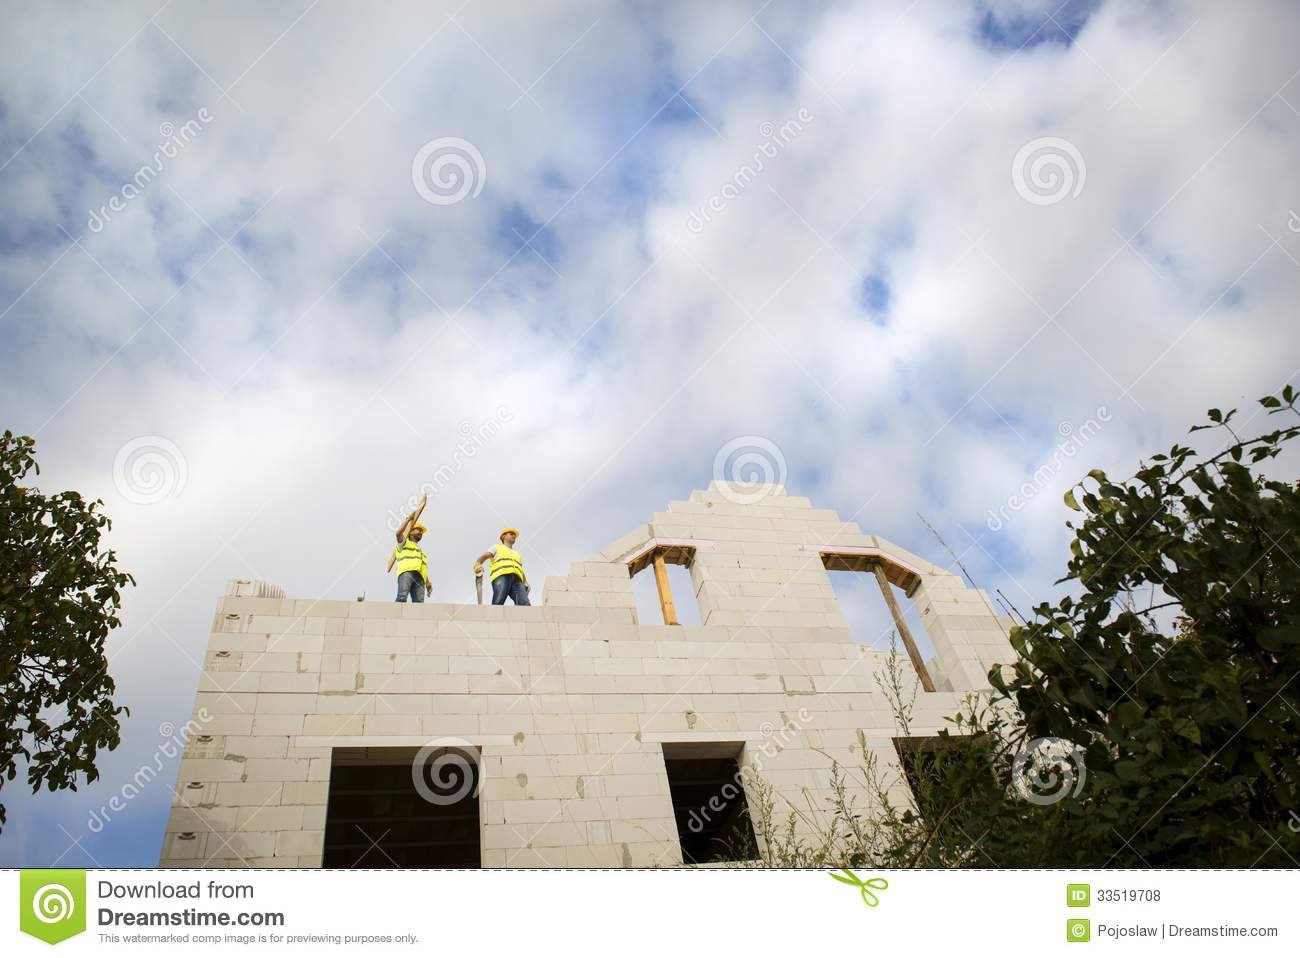 House construction royalty free stock photos image 33519708 for New house construction contract